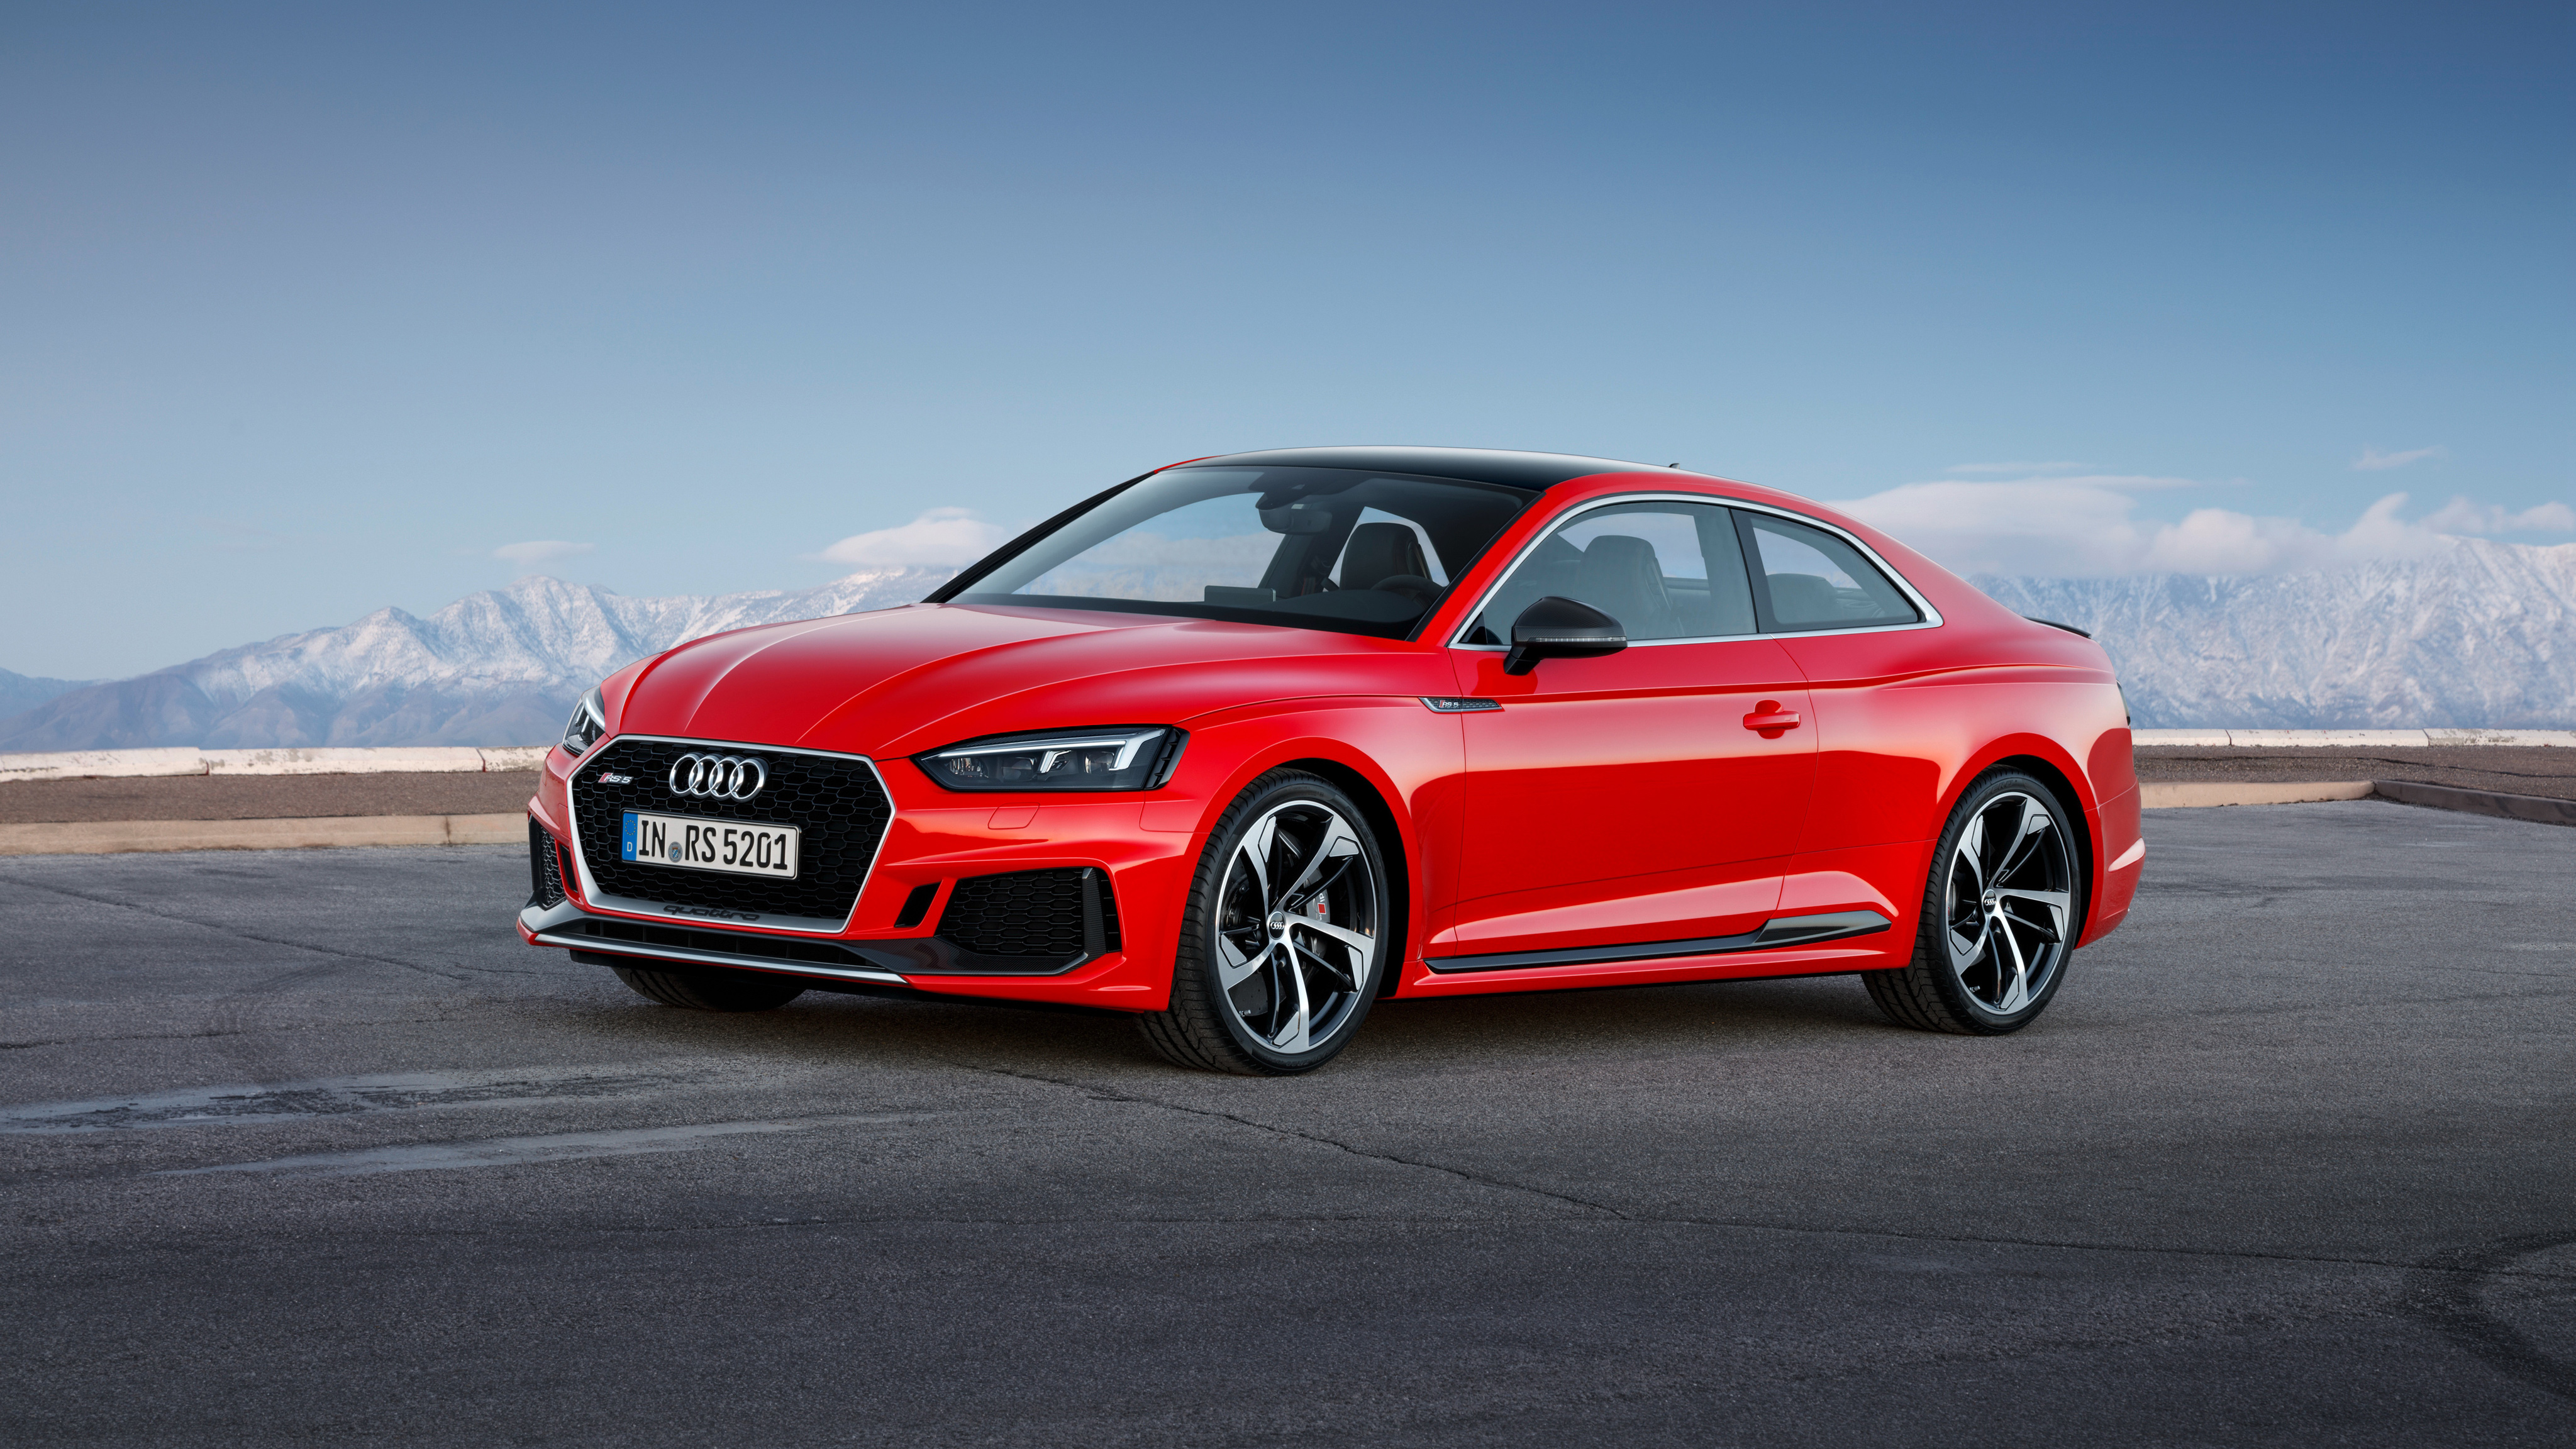 2017 Audi Rs 5 Coupe 2 Wallpaper Hd Car Wallpapers Id